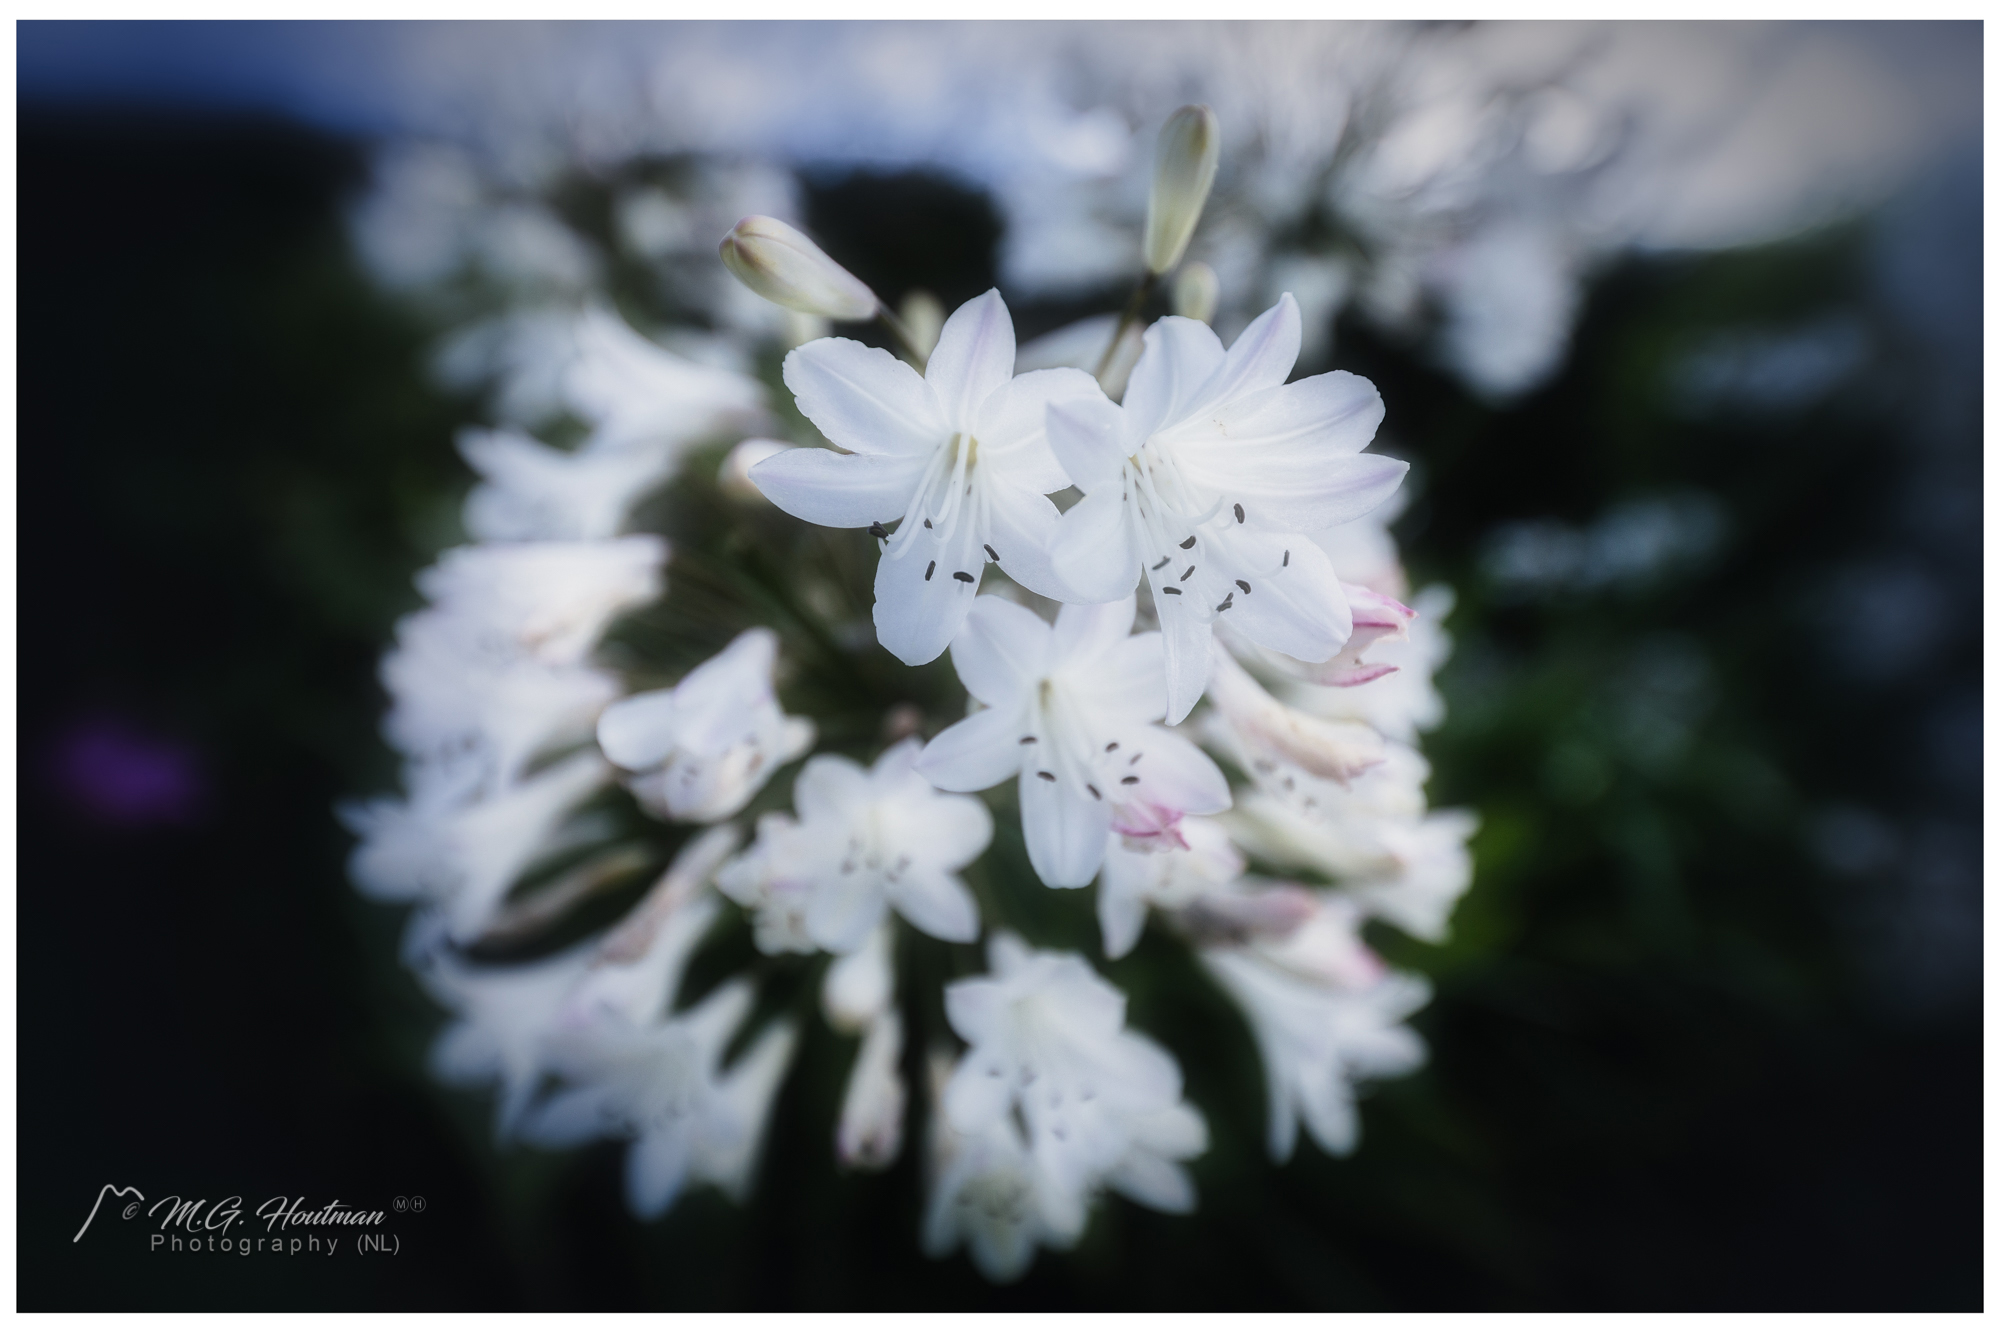 Rhododendron - Ericaceae